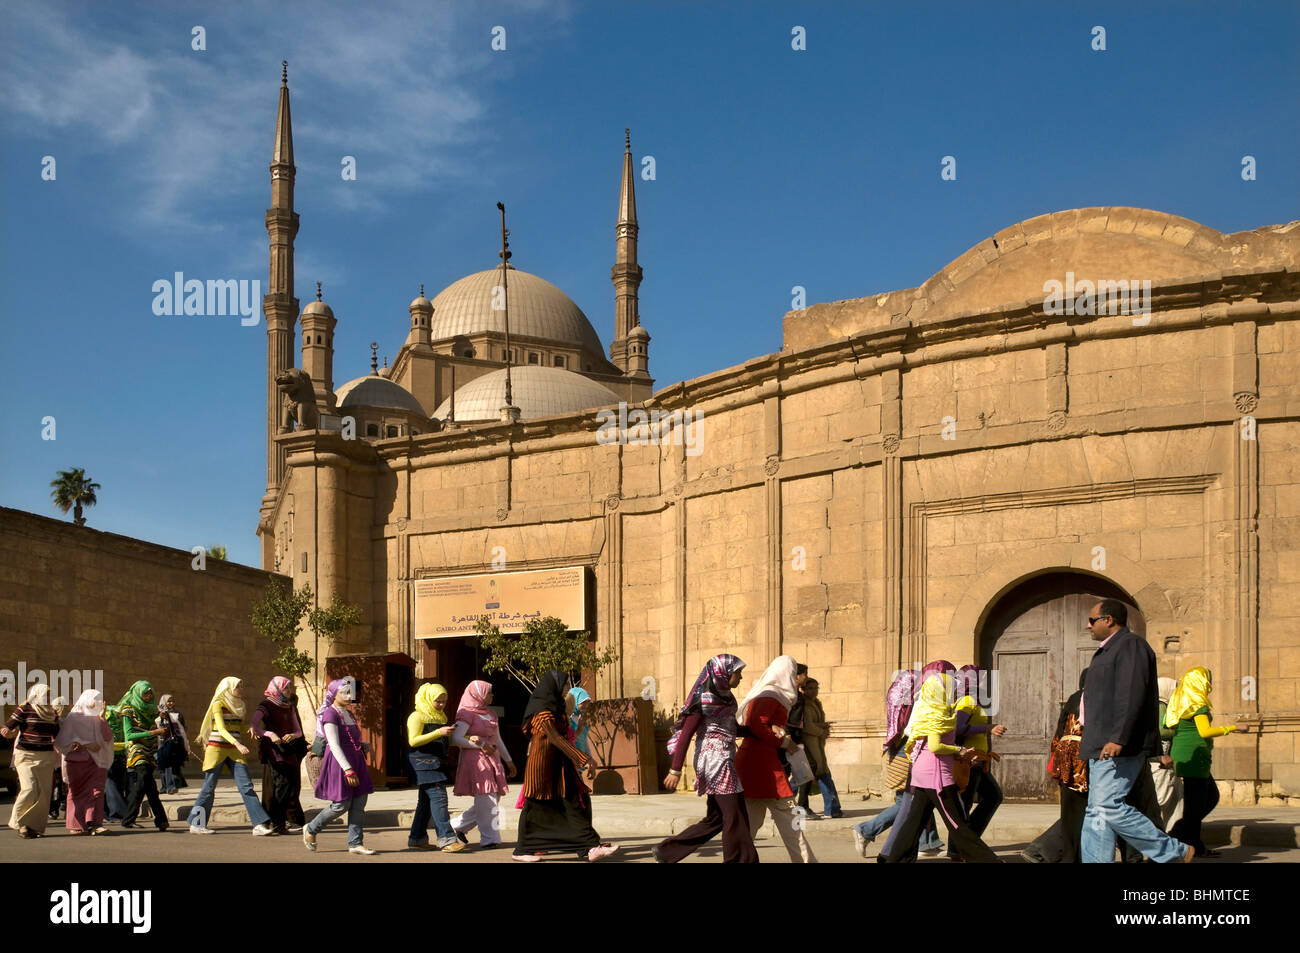 School Children visiting The Mosque of Muhammad Ali Pasha or Alabaster Mosque Cairo Egypt - Stock Image